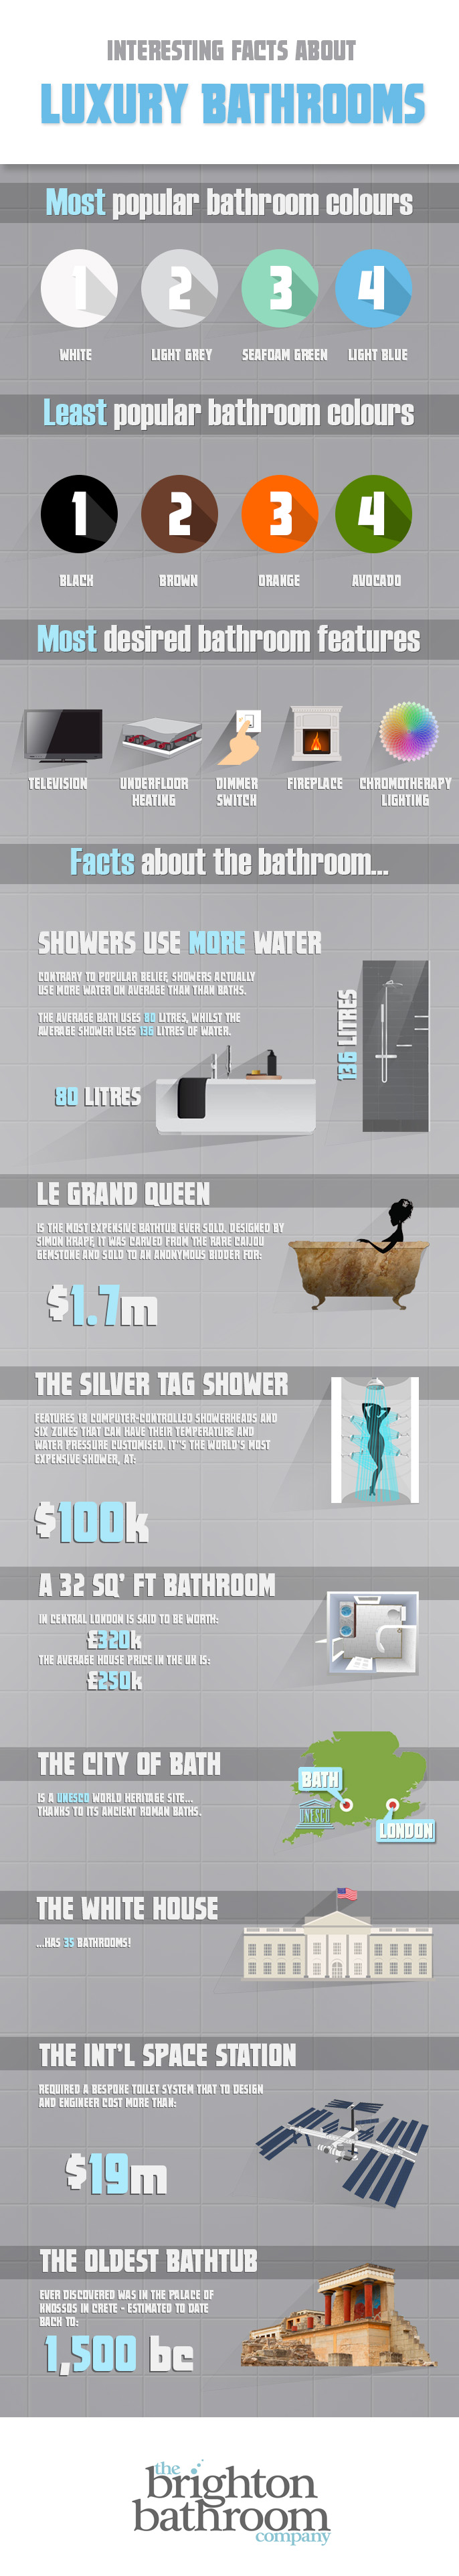 tbbc-luxury-bathroom-infographic